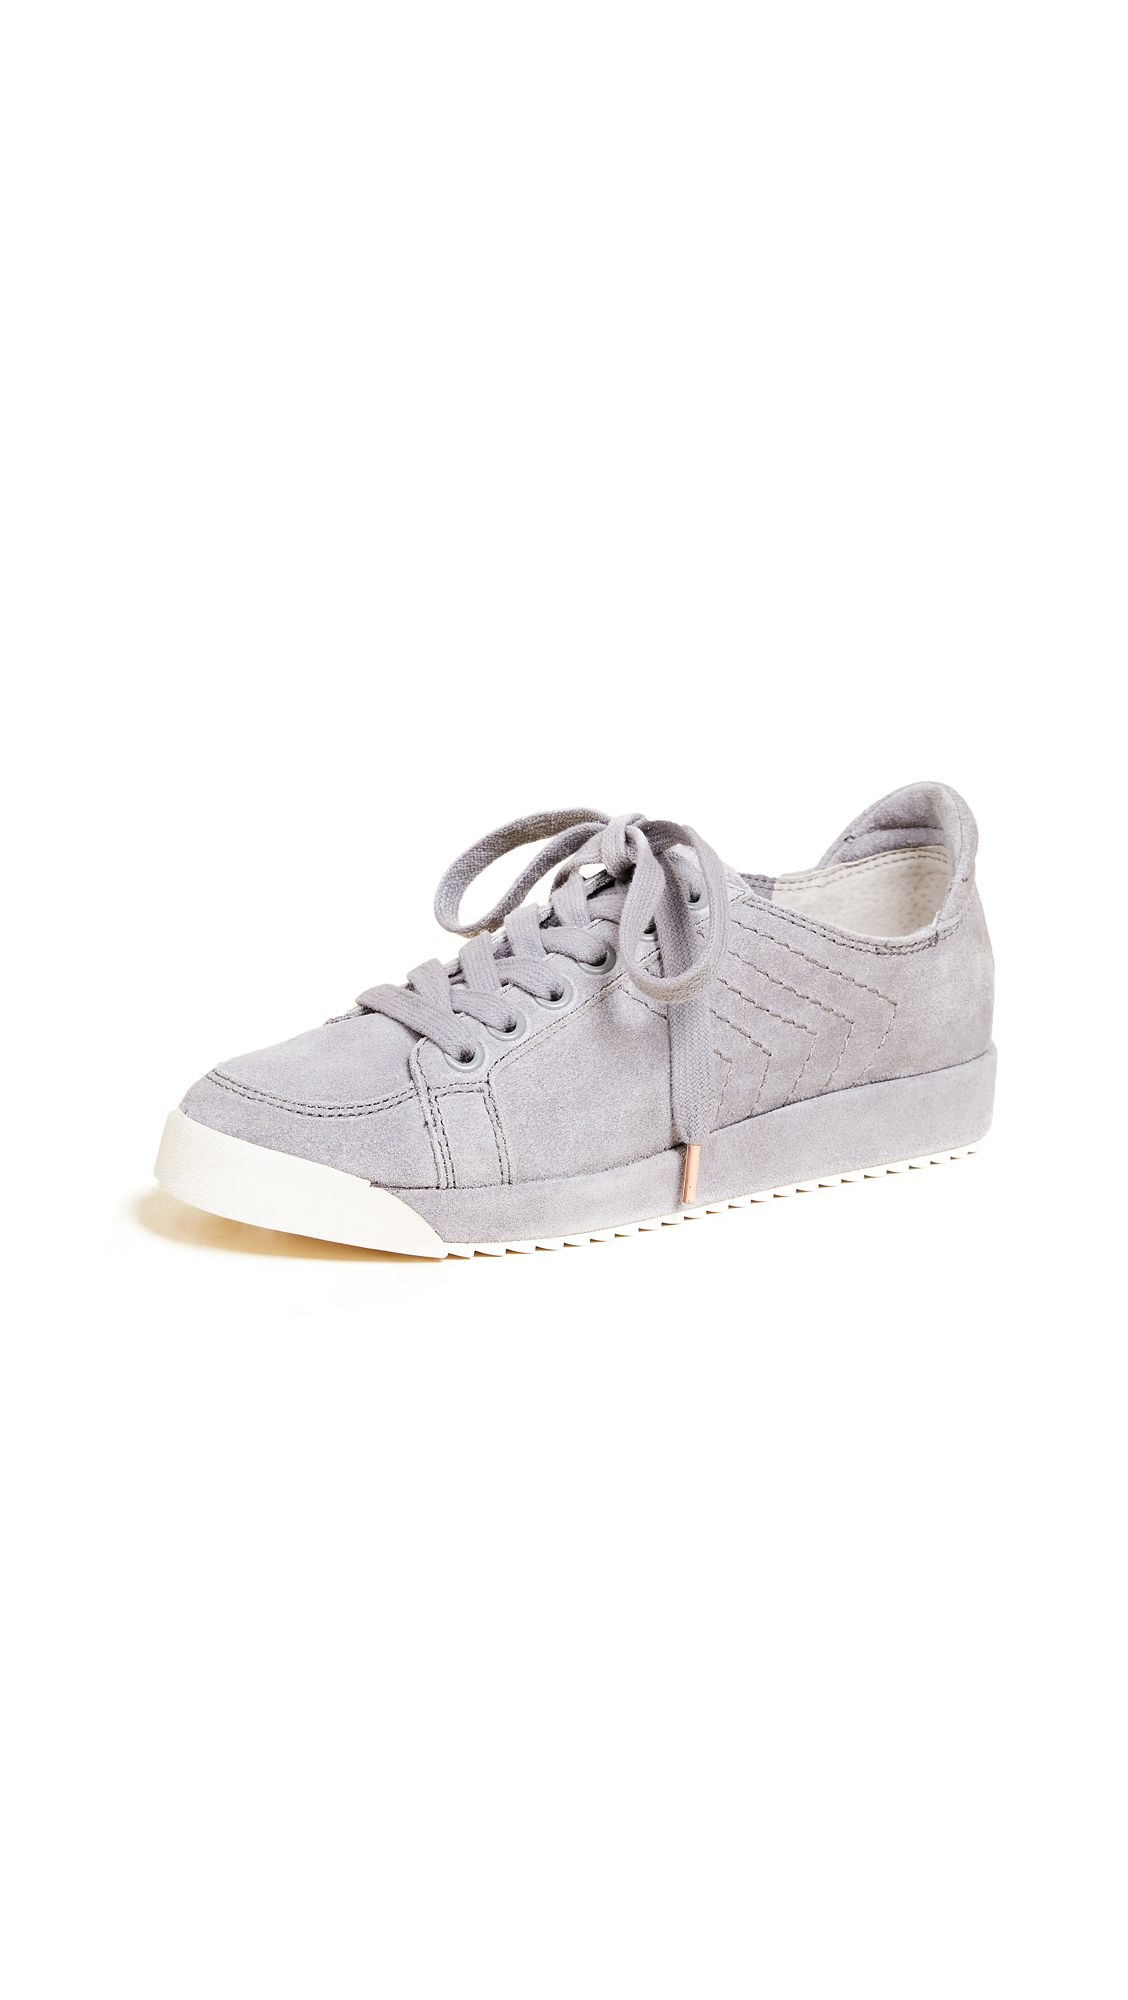 Dolce Vita Sage Lace Up Sneakers - Grey